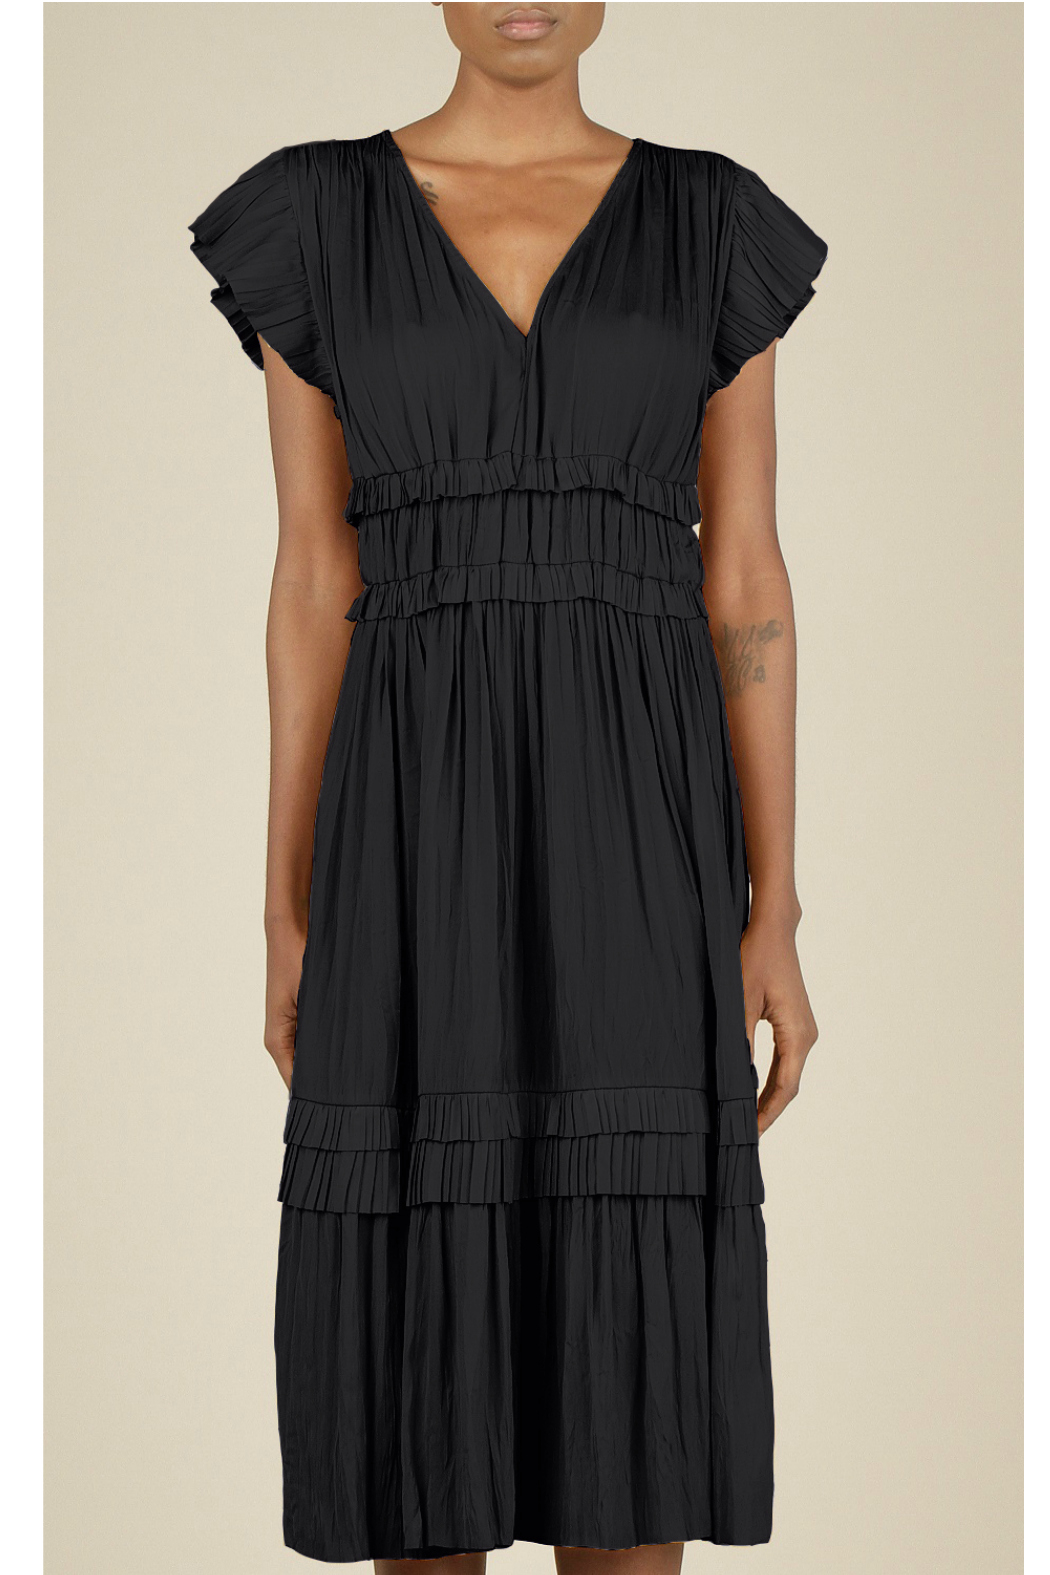 Current Air Pleated ruffle dress - Front Cropped Image